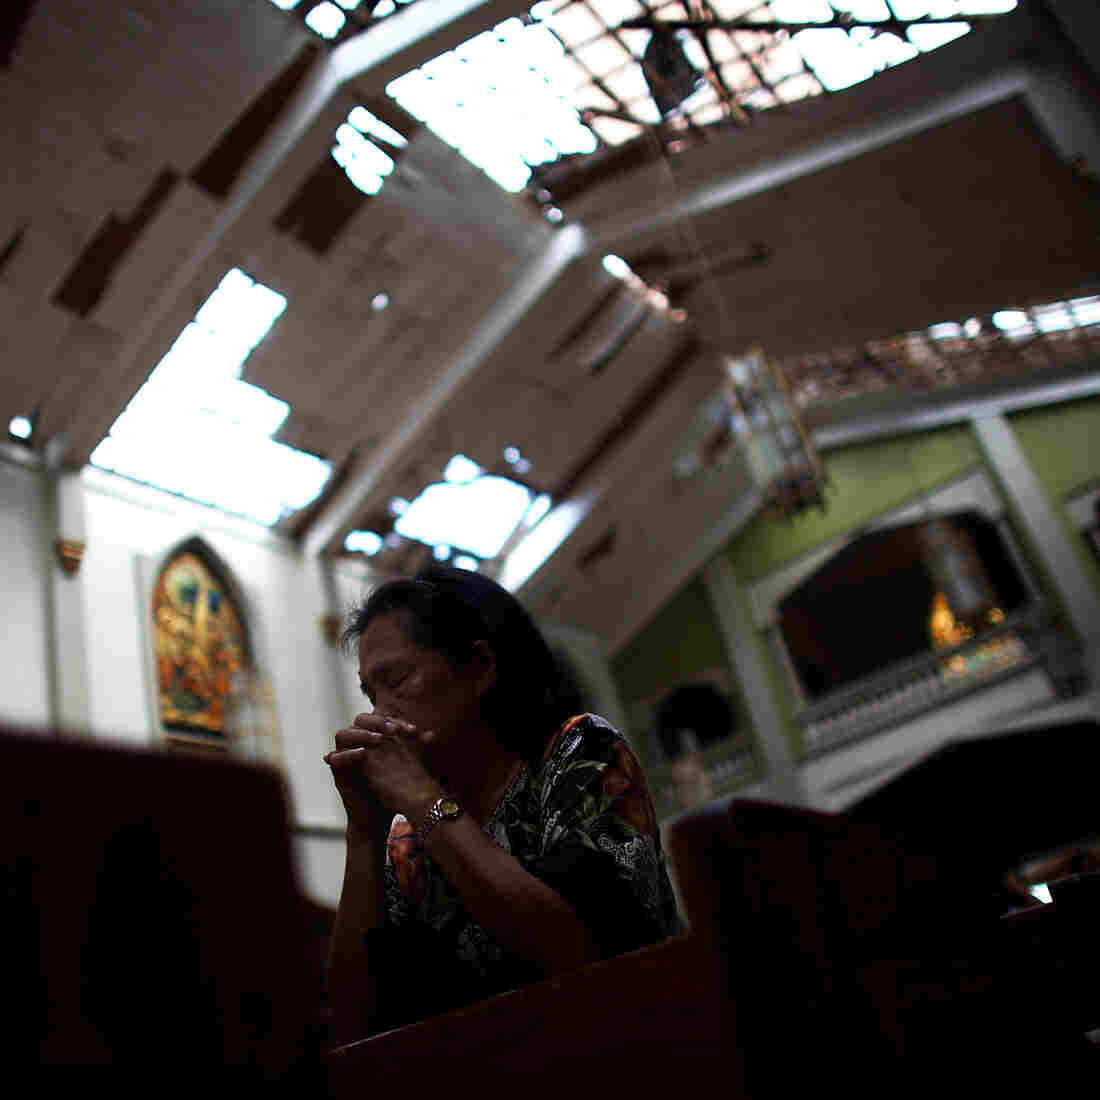 A Filipino woman prays at morning Mass at Santo Nino church, which was damaged by Typhoon Haiyan in Tacloban, Philippines, on Sunday.